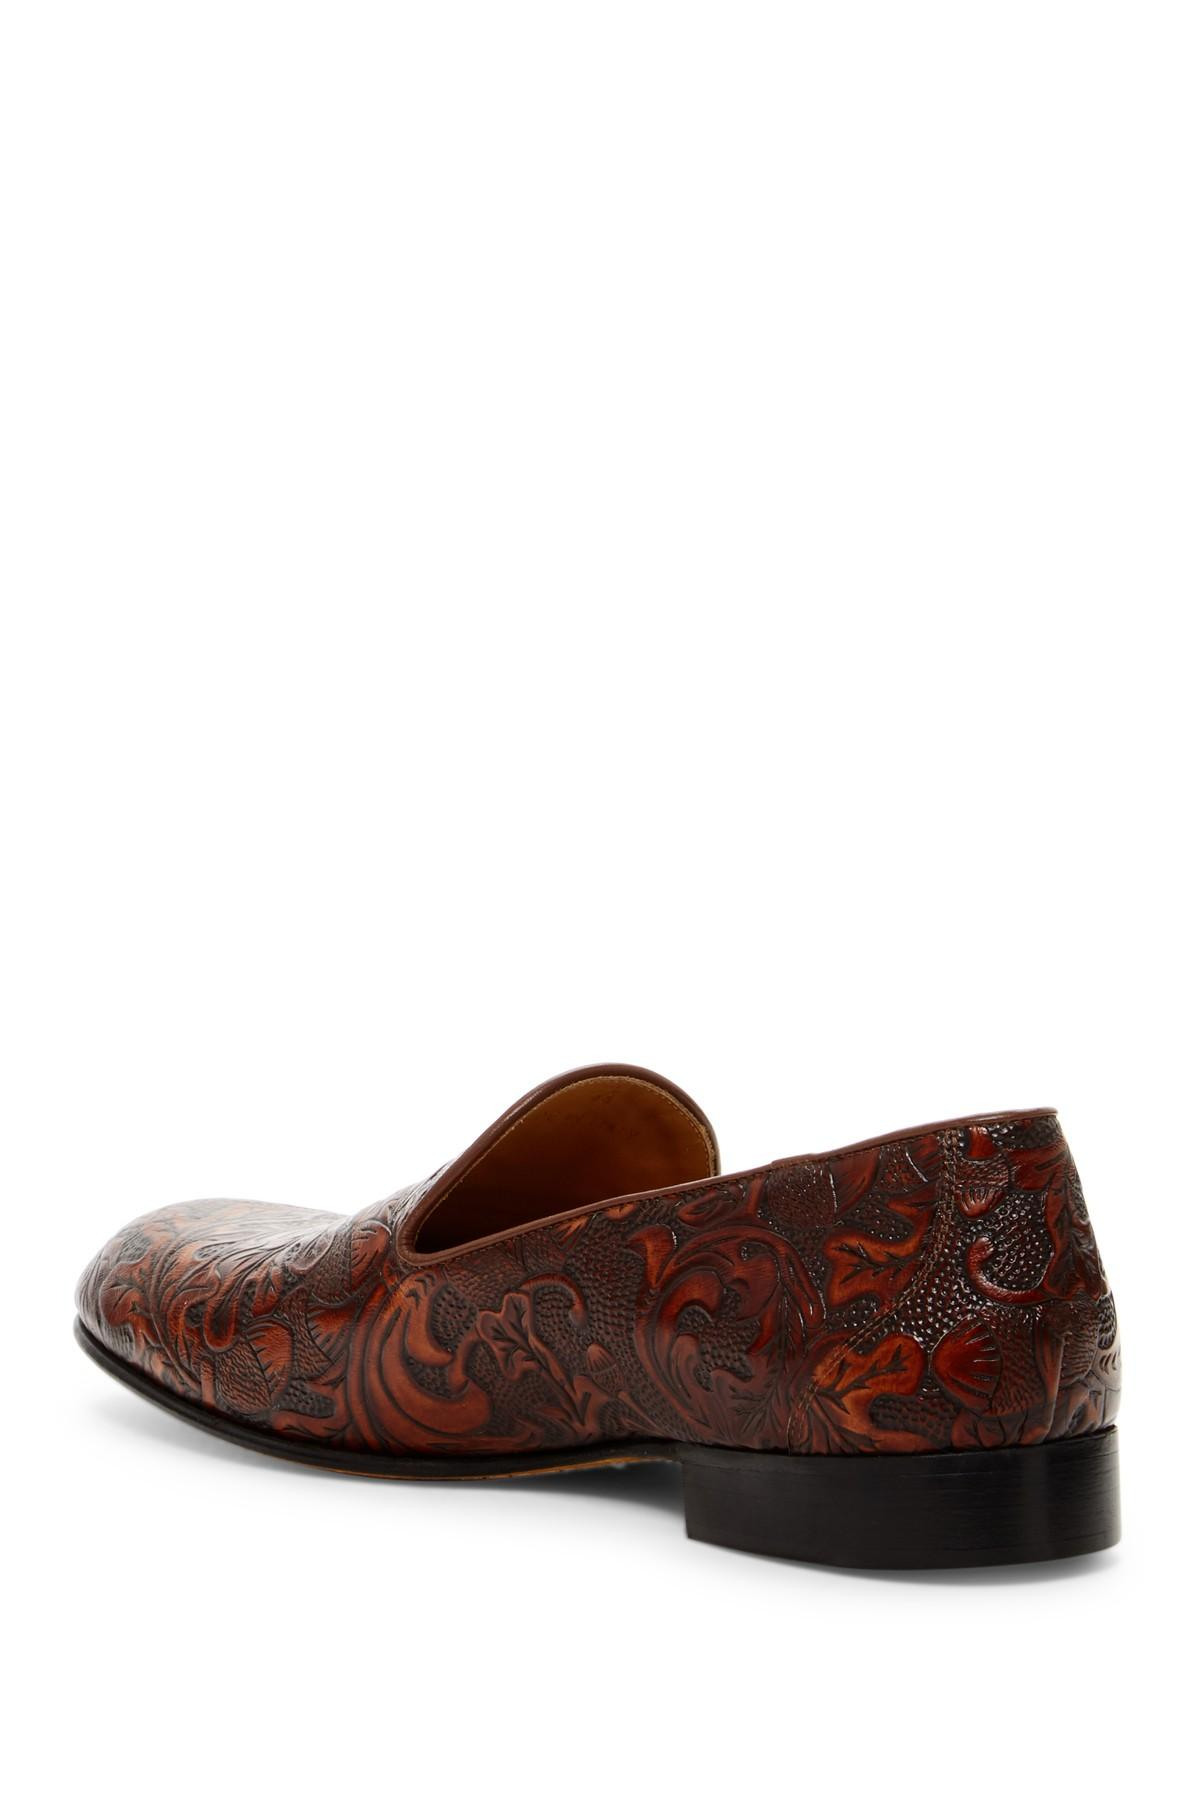 Forzieri Hogan Lyst - Vivienne Westwood Tooled Oaknuts Loafer In Brown